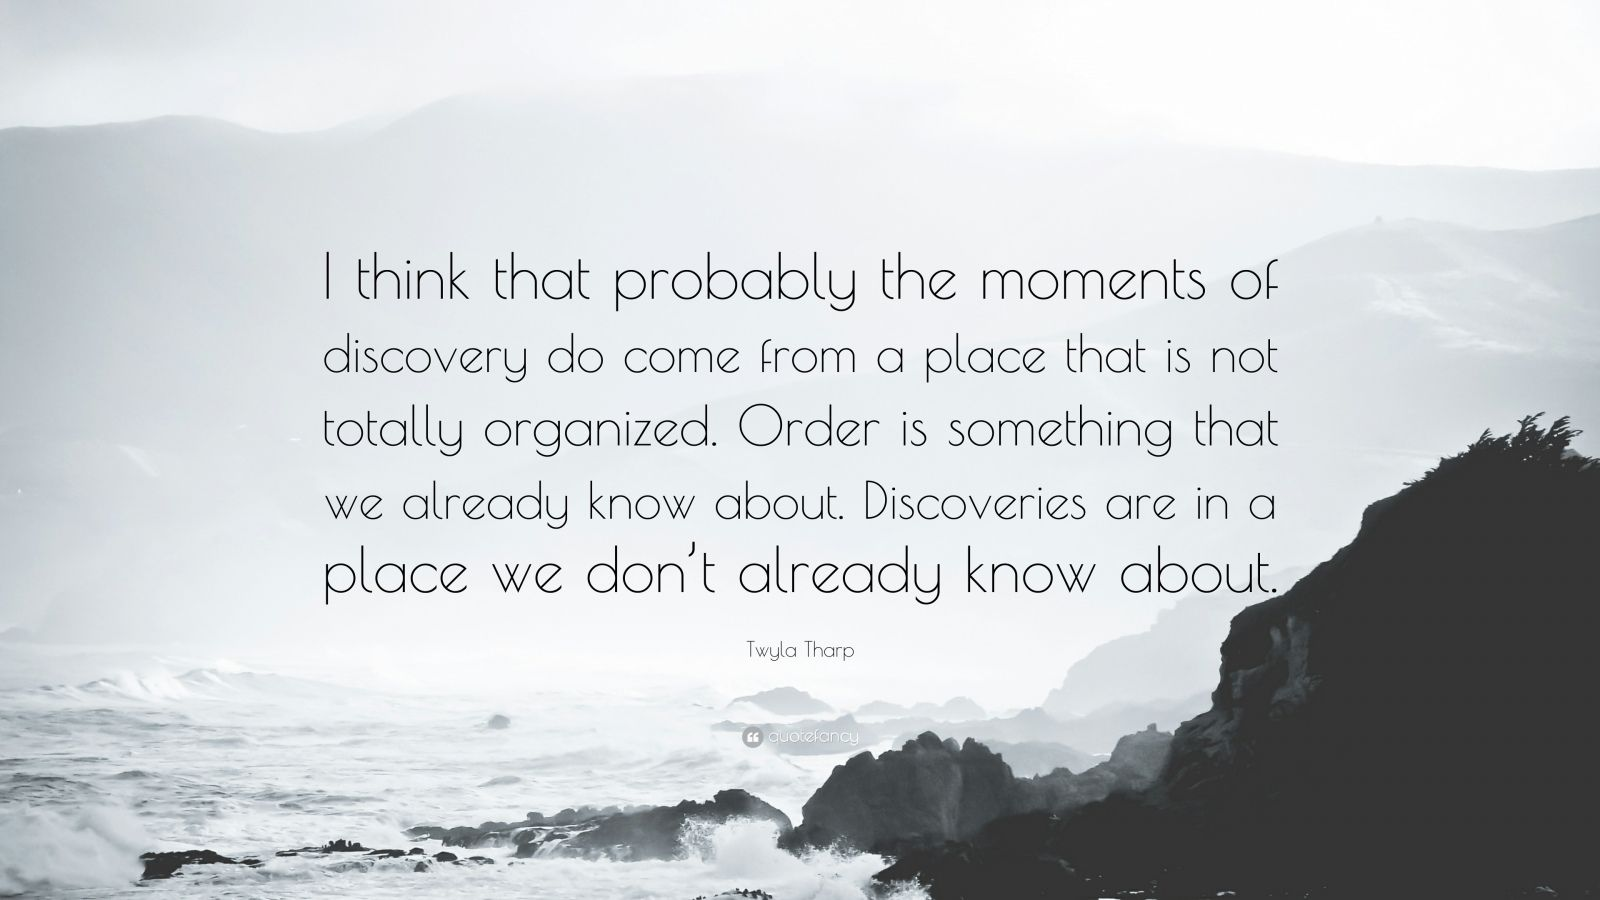 """Twyla Tharp Quote: """"I think that probably the moments of discovery do come from a place that is not totally organized. Order is something that we already know about. Discoveries are in a place we don't already know about."""""""